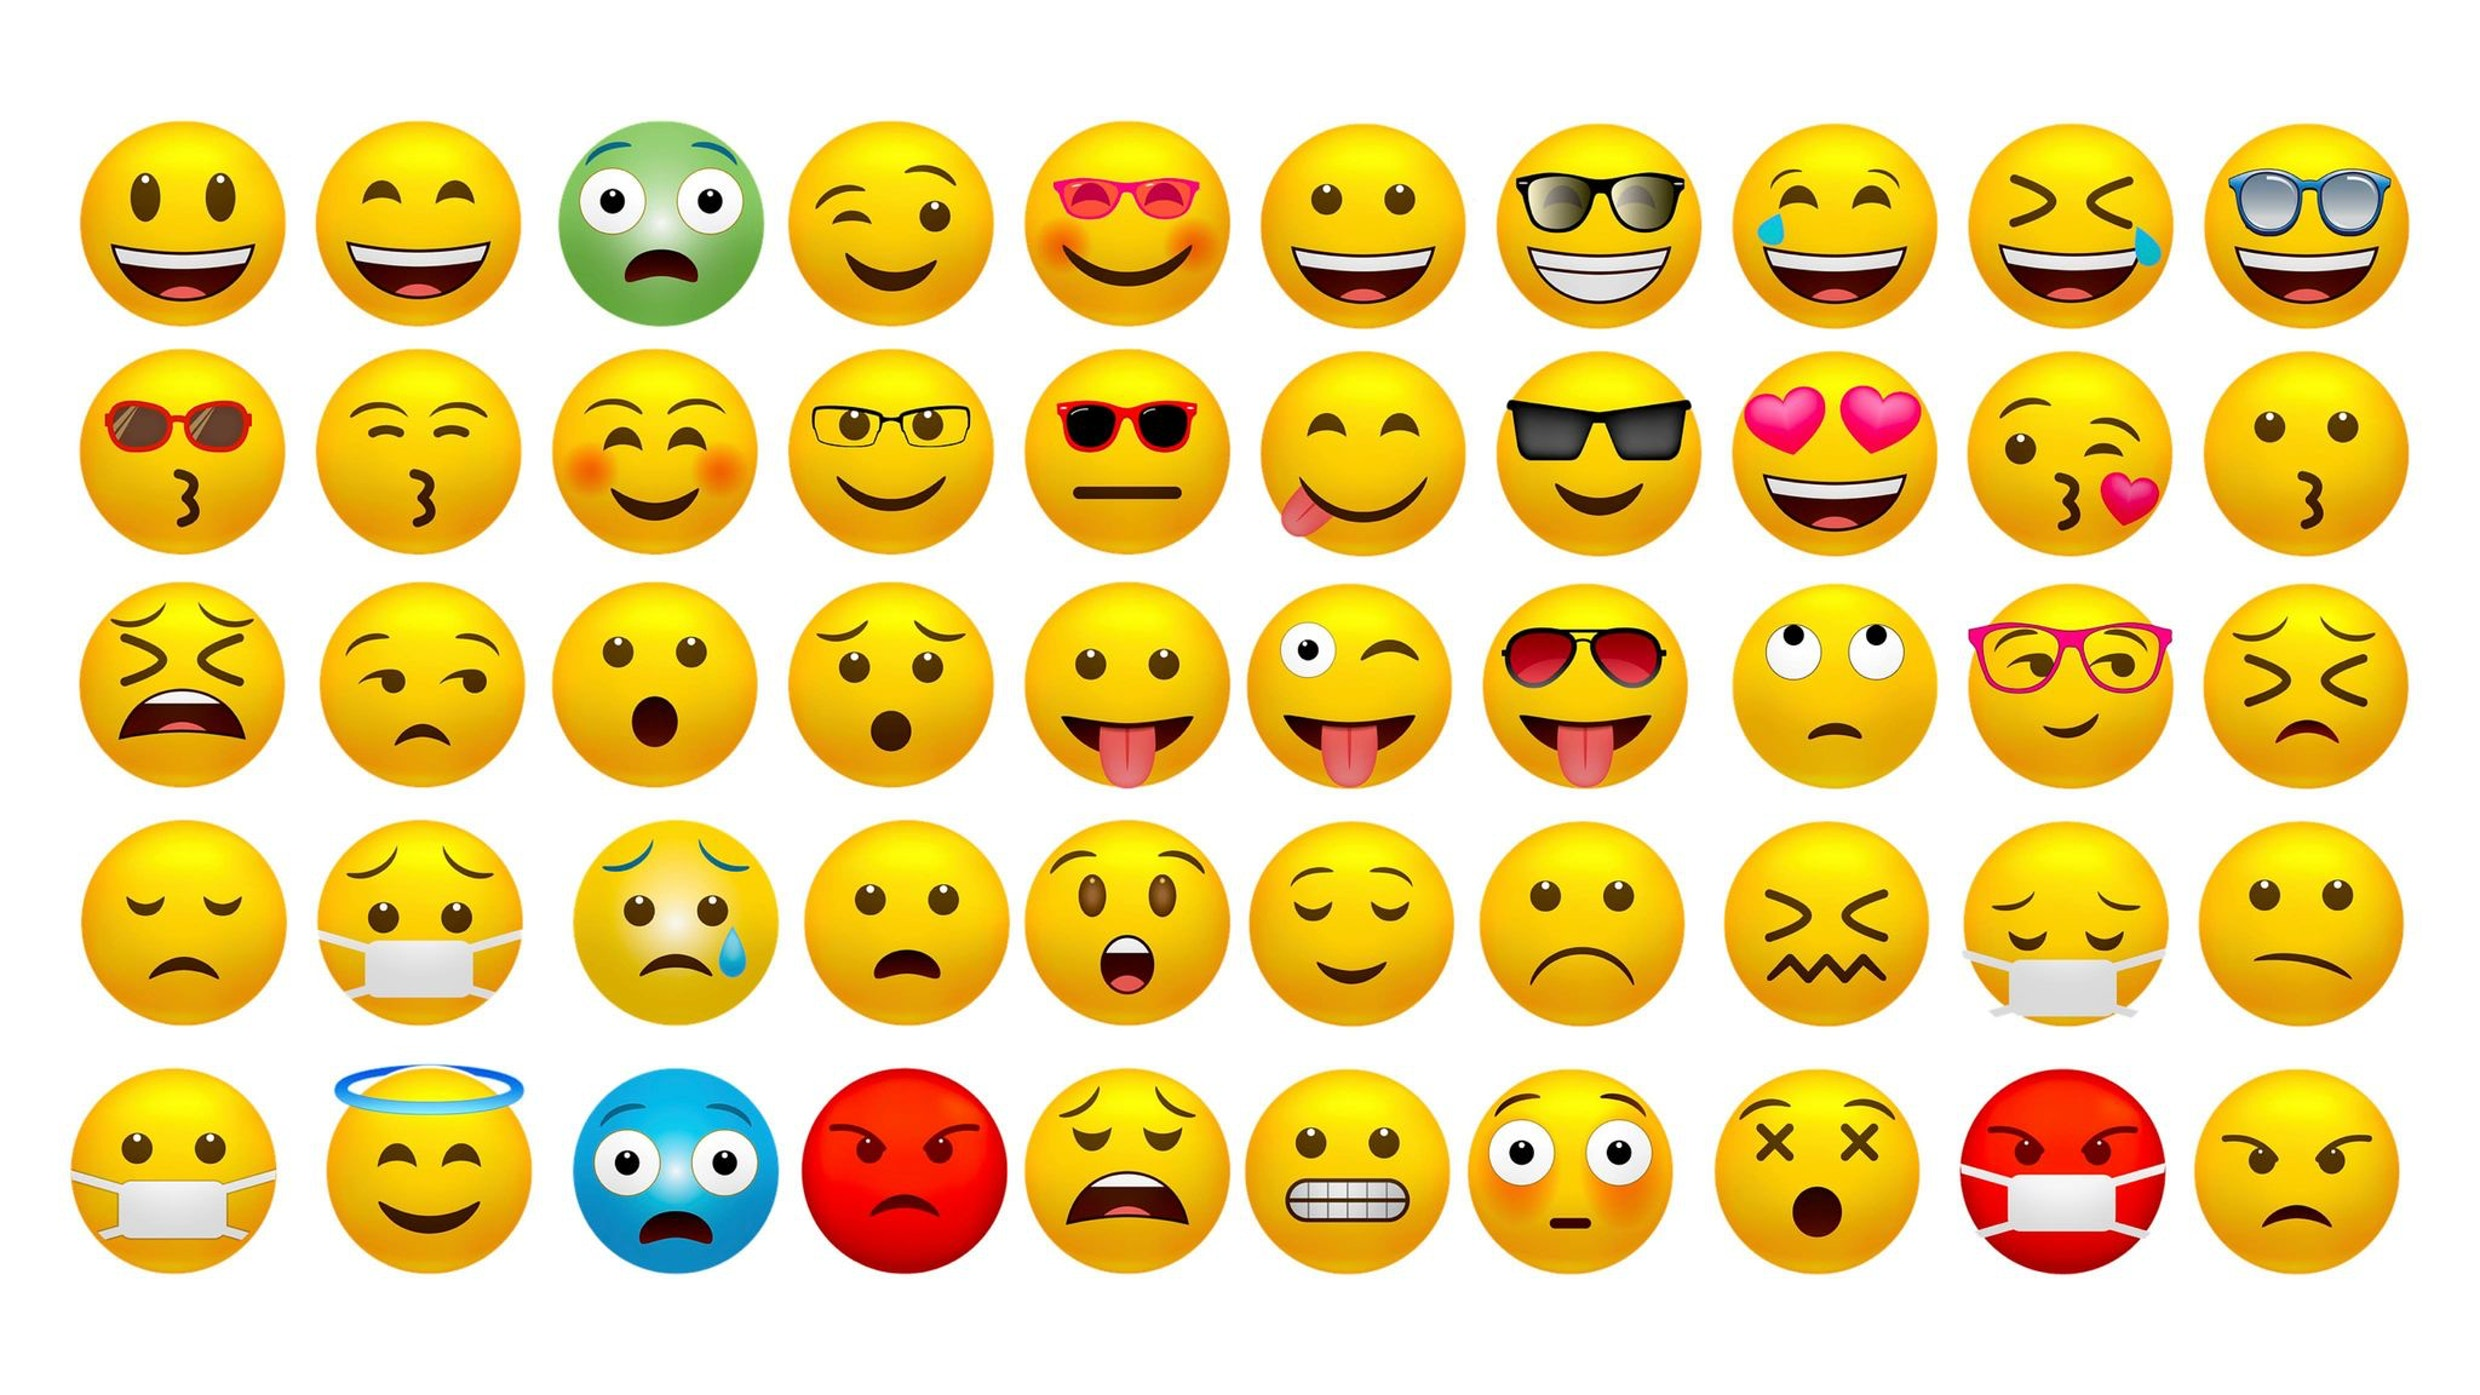 An assortment of emojis showing different facial expressions